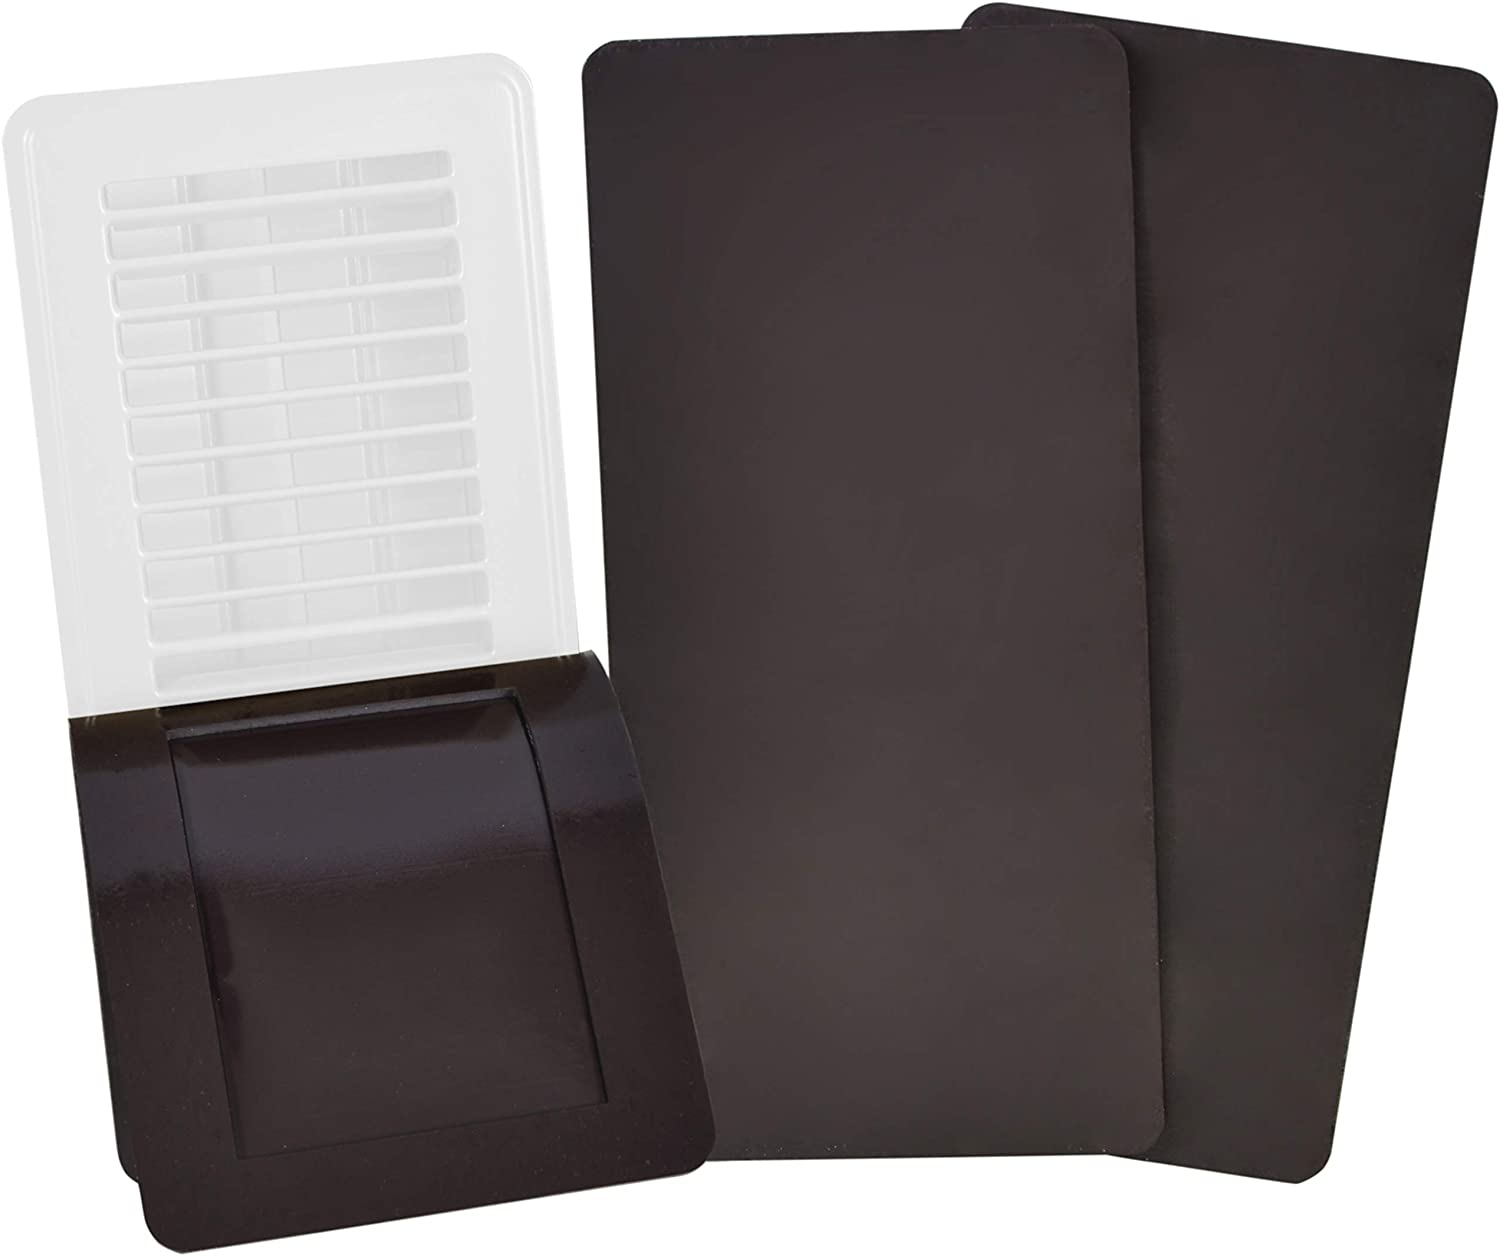 "SEAL360 Magnetic Vent Covers (3-Pack), Pockets for Complete Seal, 5.5"" X 14"" (Brown) for Floor, Wall, or Ceiling Vents and Air Registers, for RV, Home HVAC and AC Vents, Vent Not Included"